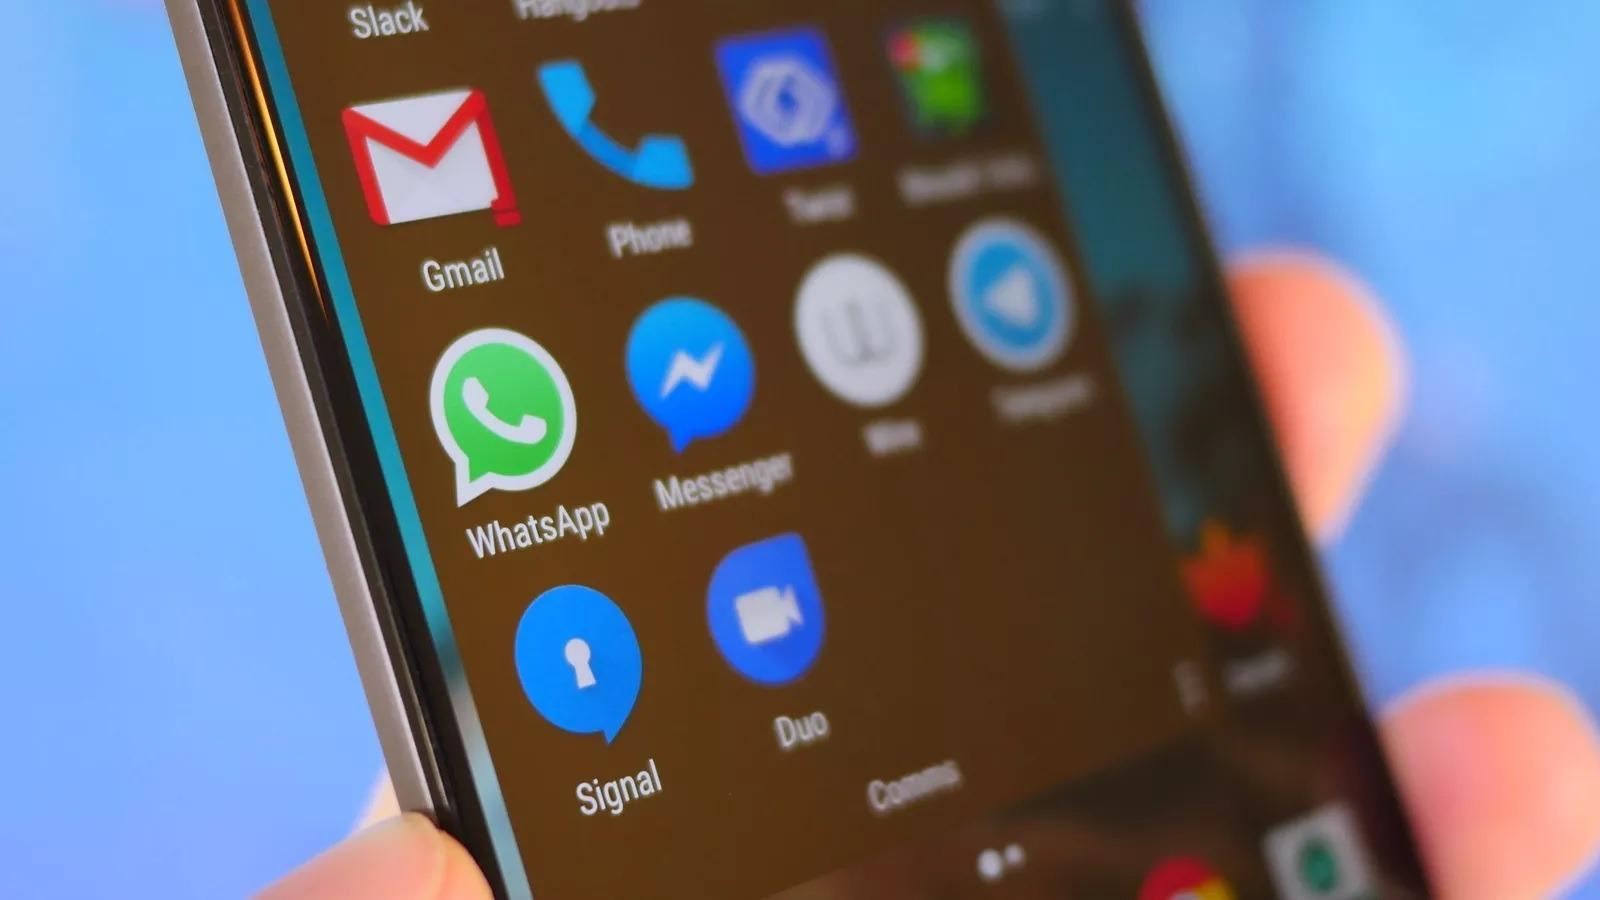 Whatsapp Gets New Feature; Now Open Facebook And Instagram Videos On Whatsapp